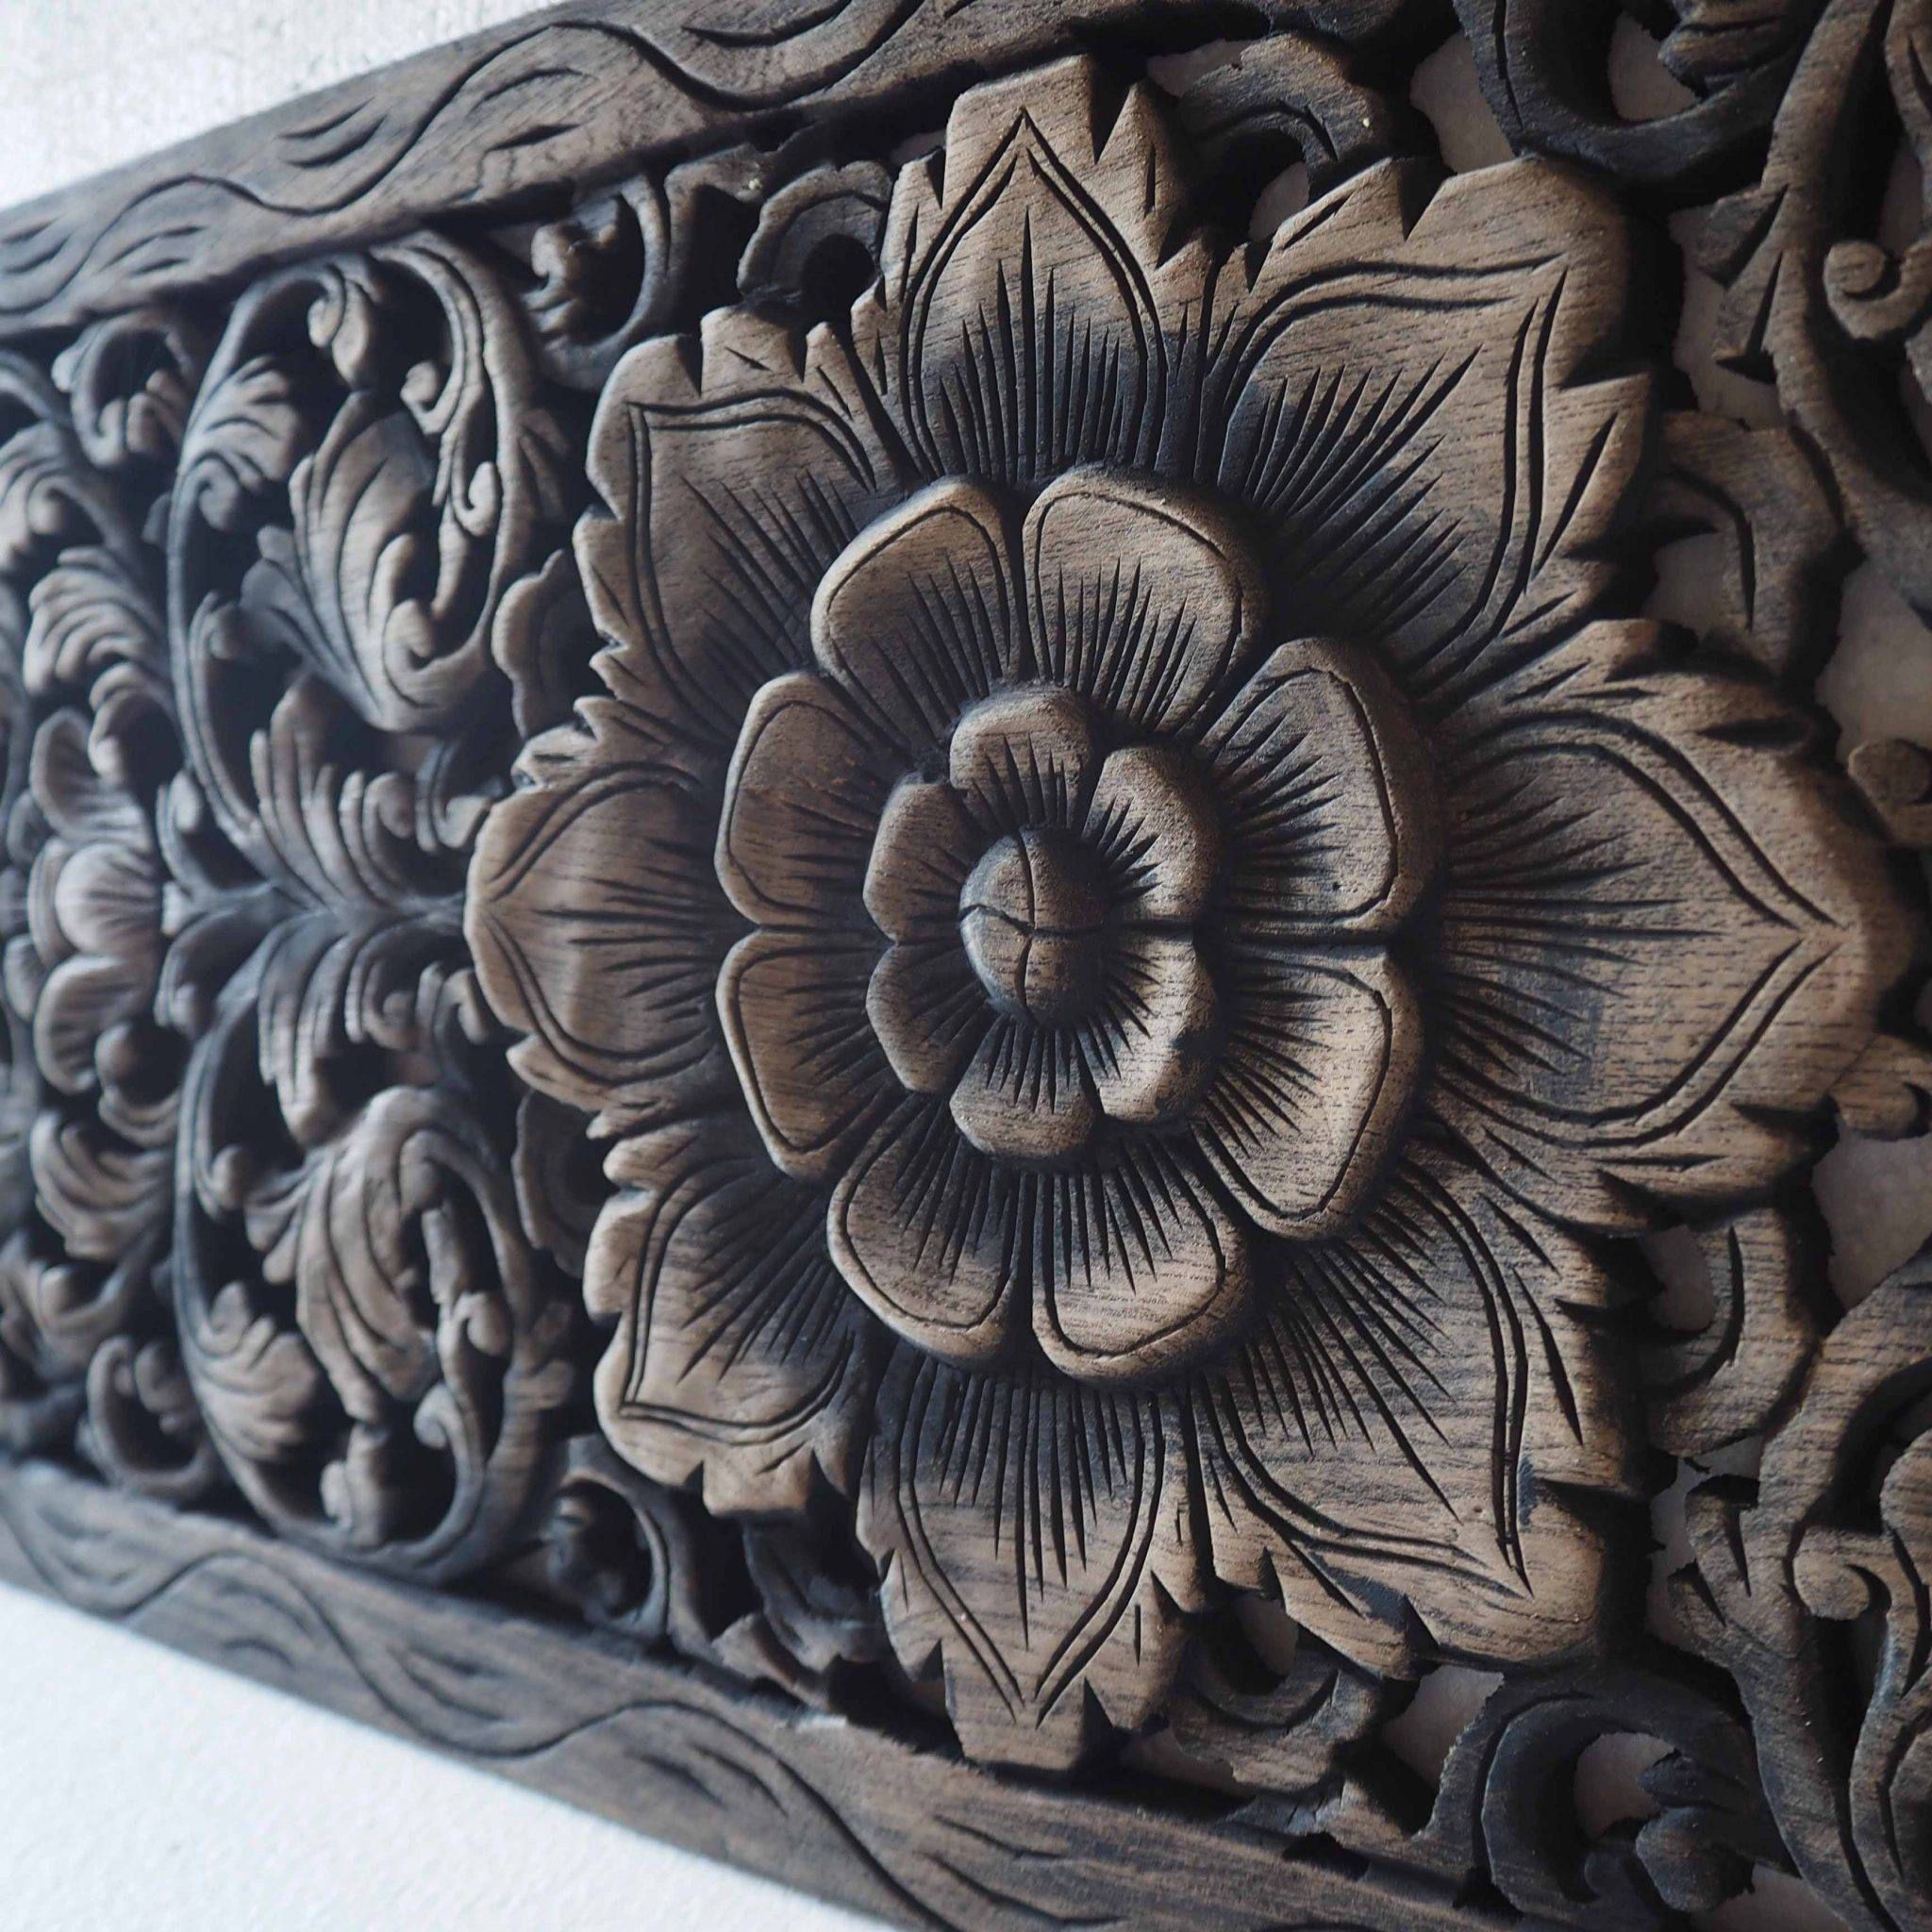 Thai Lotus Wood Carving Wall Art Panel – Siam Sawadee Pertaining To Most Recent Asian Wall Art Panels (View 12 of 20)